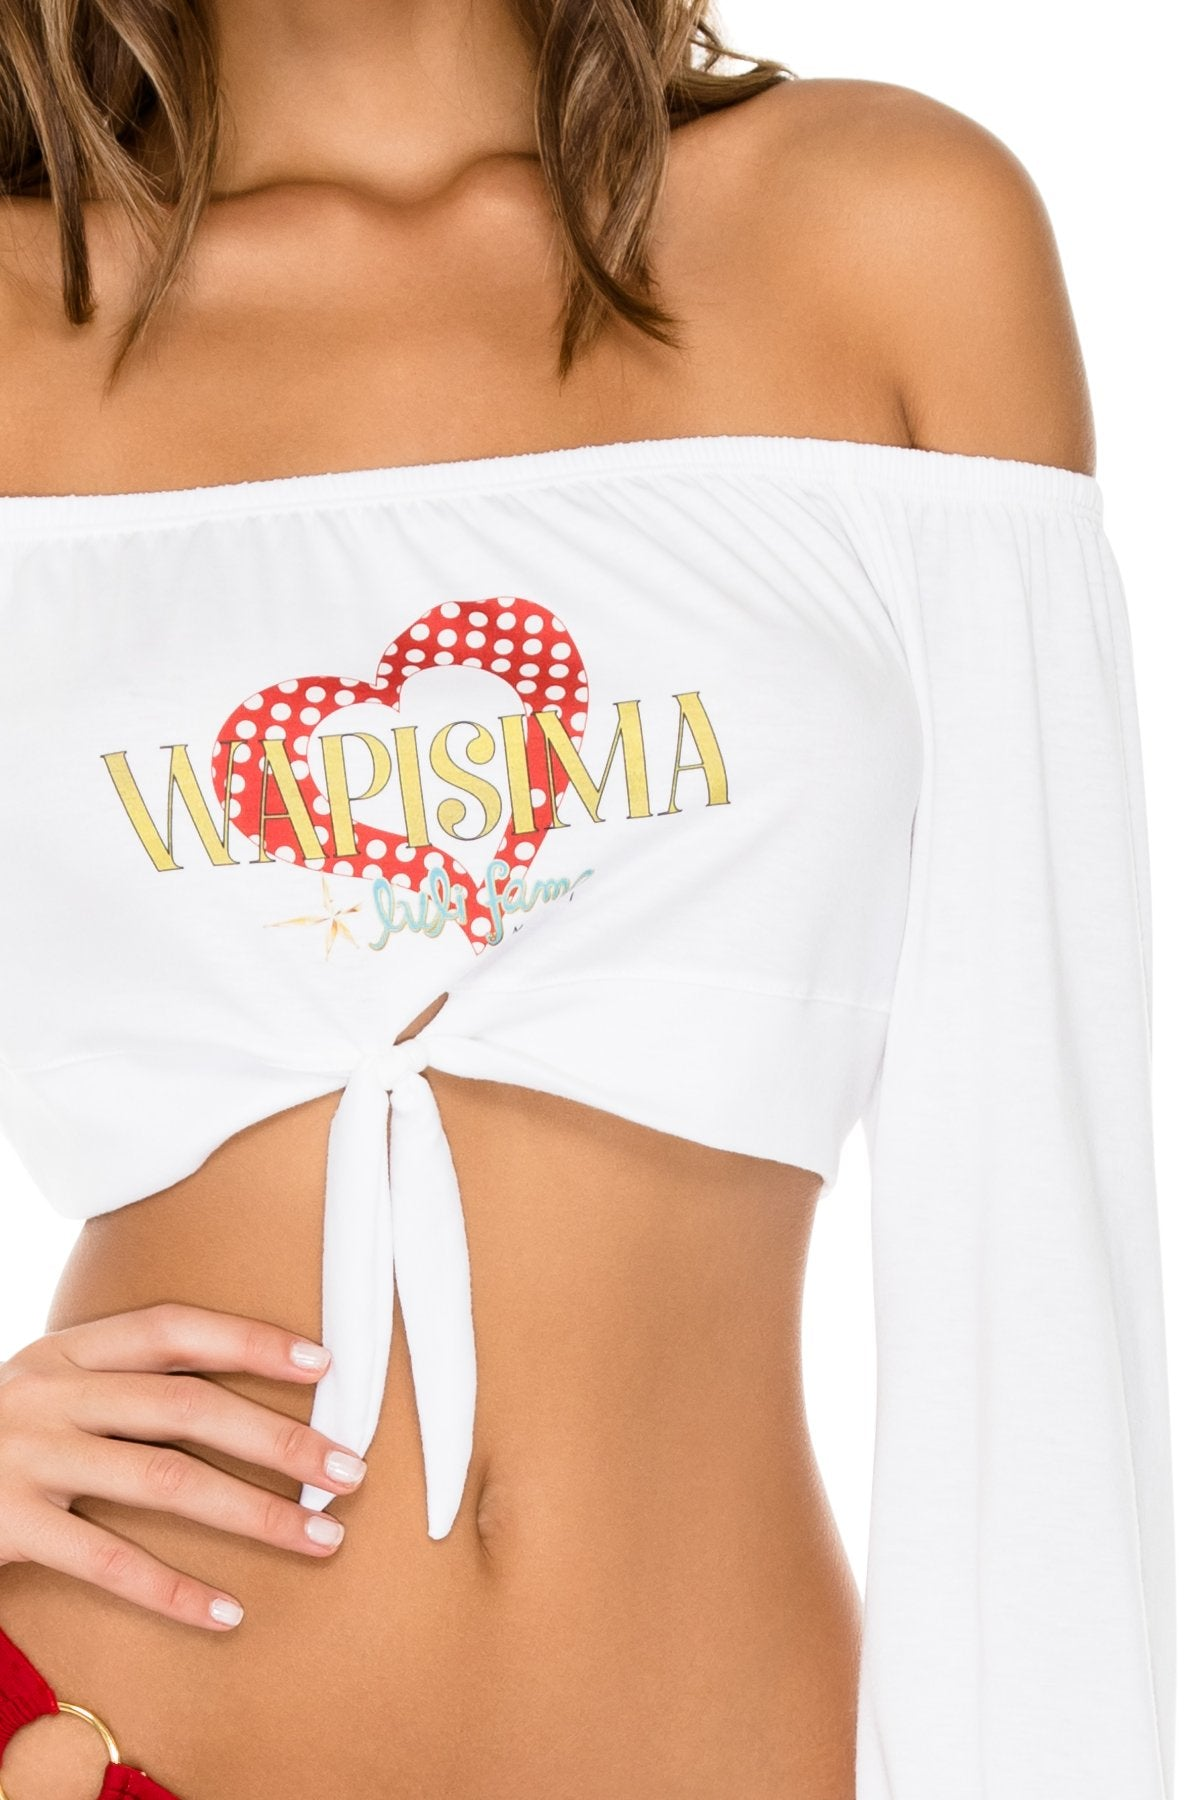 WAPISIMA - Off The Shoulder Top & Wavey Ruched Back Brazilian Bottom • Multicolor